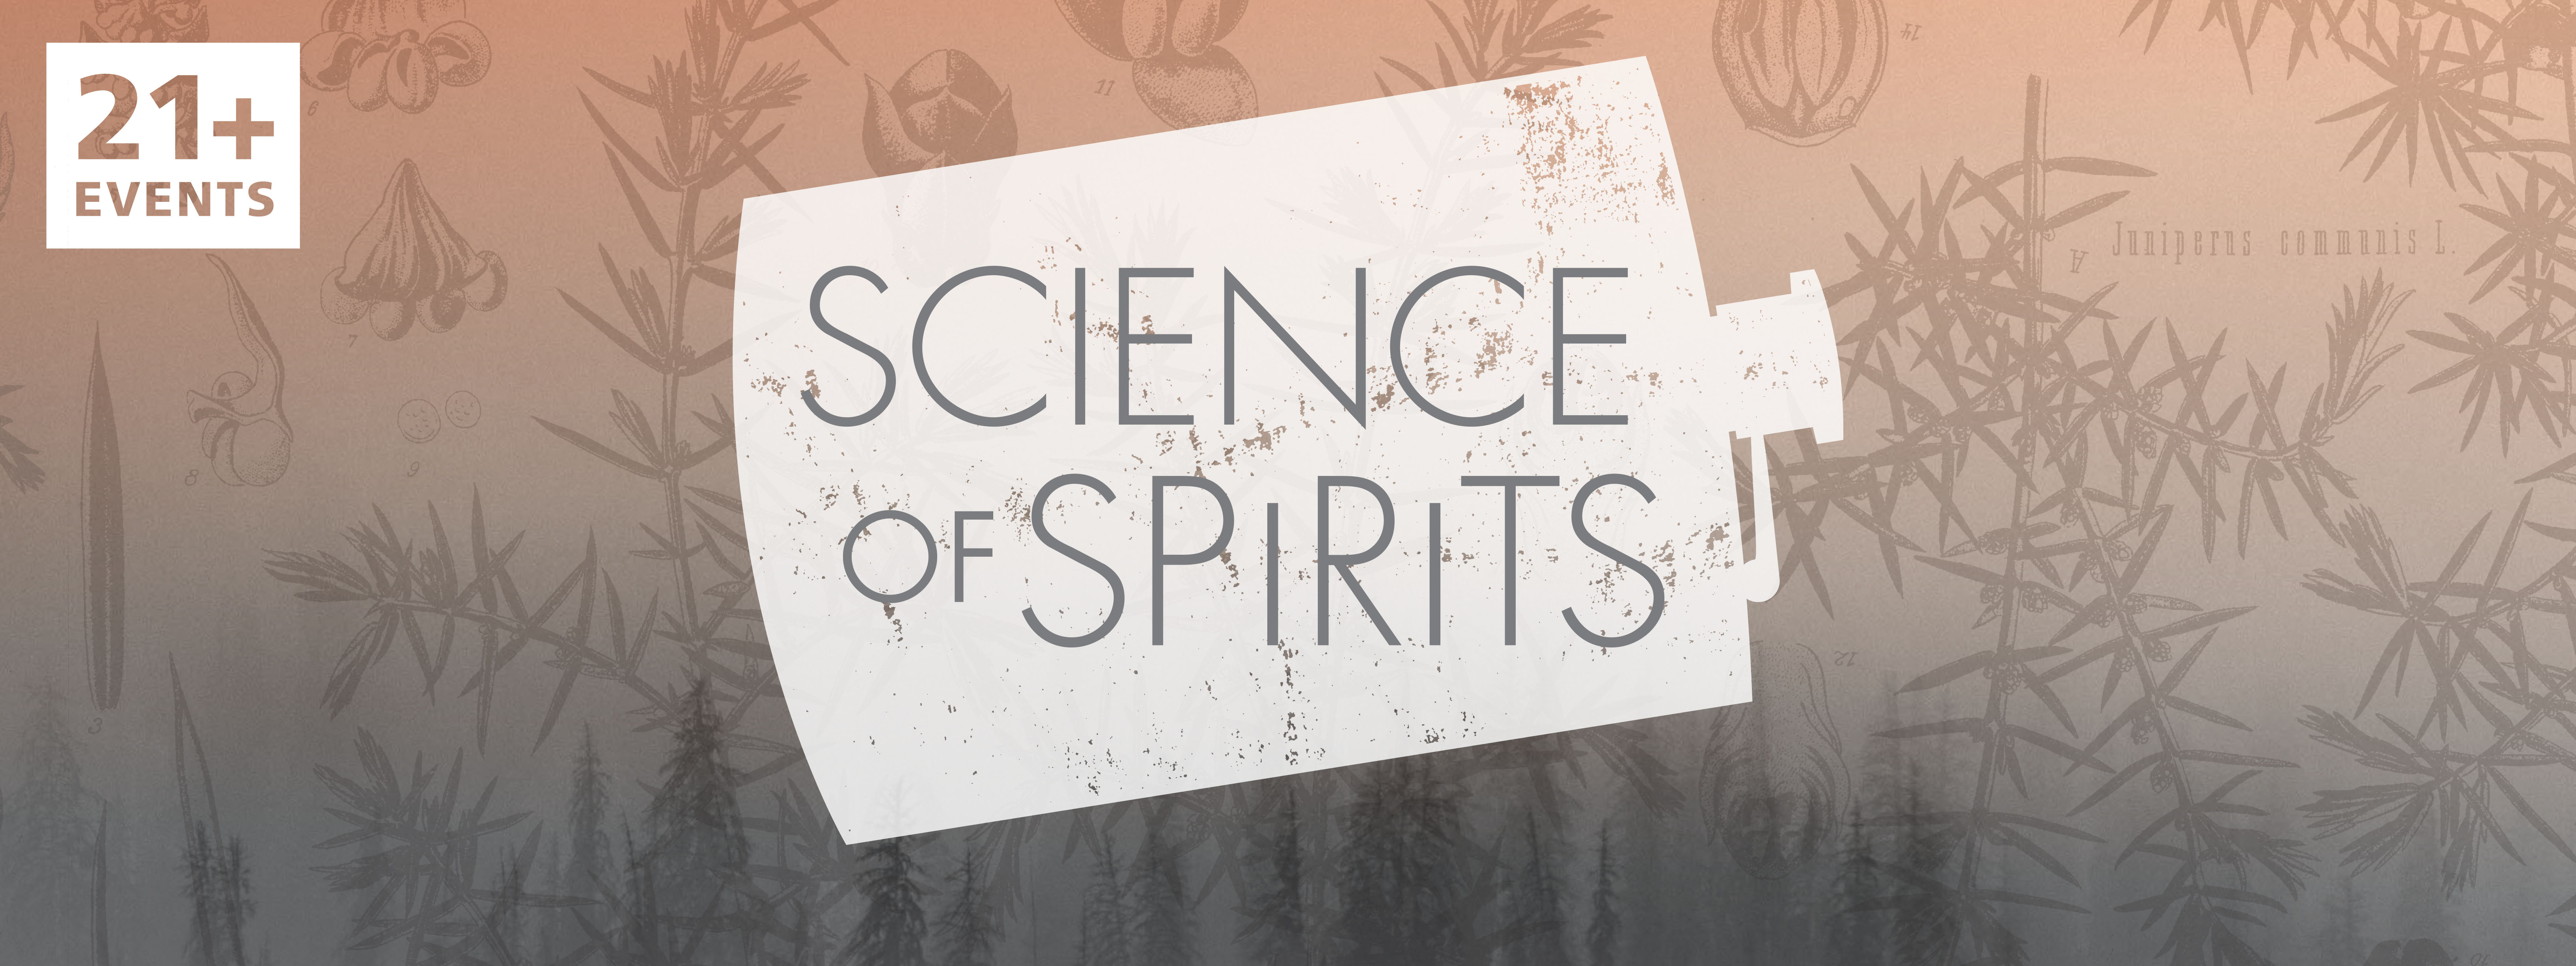 Science of Spirits 2017